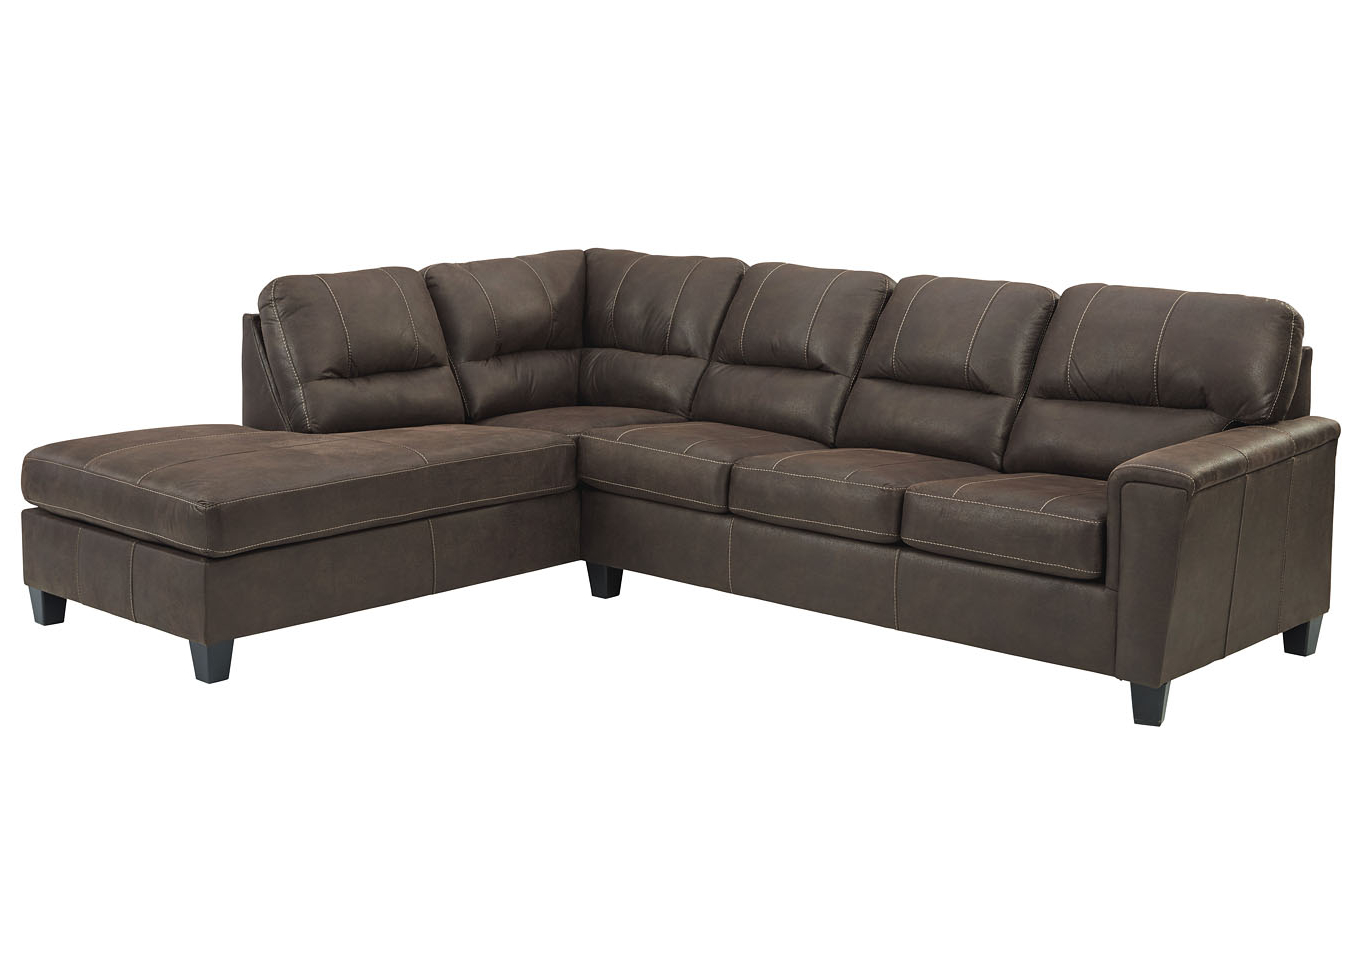 Navi Chestnut Right Arm Facing Sofa Chaise Family For Popular 2pc Maddox Right Arm Facing Sectional Sofas With Chaise Brown (View 14 of 20)